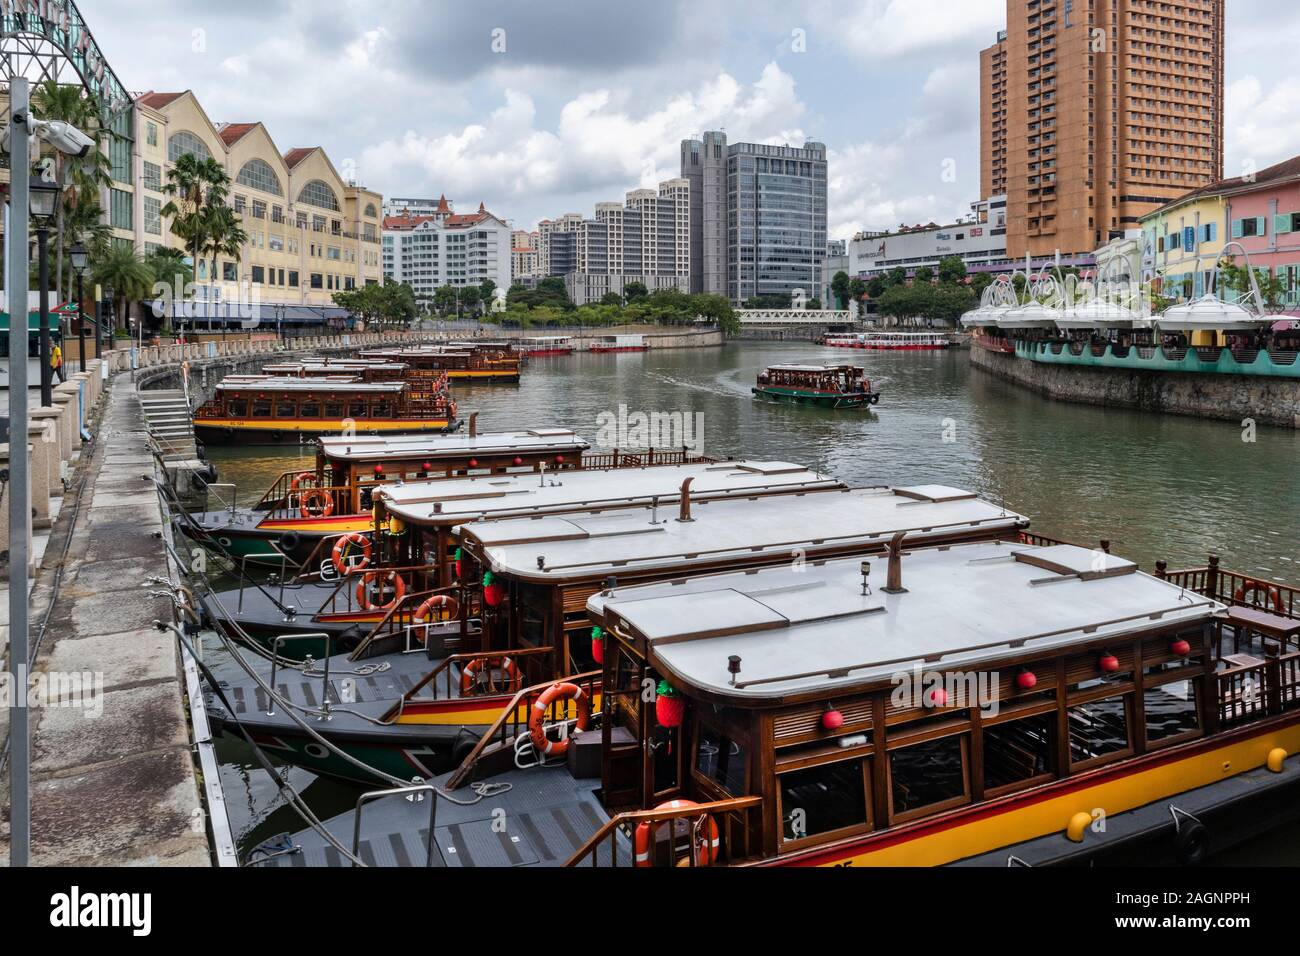 Tourist boats on the River Singapore at, Clarke Quay, Singapore Stock Photo